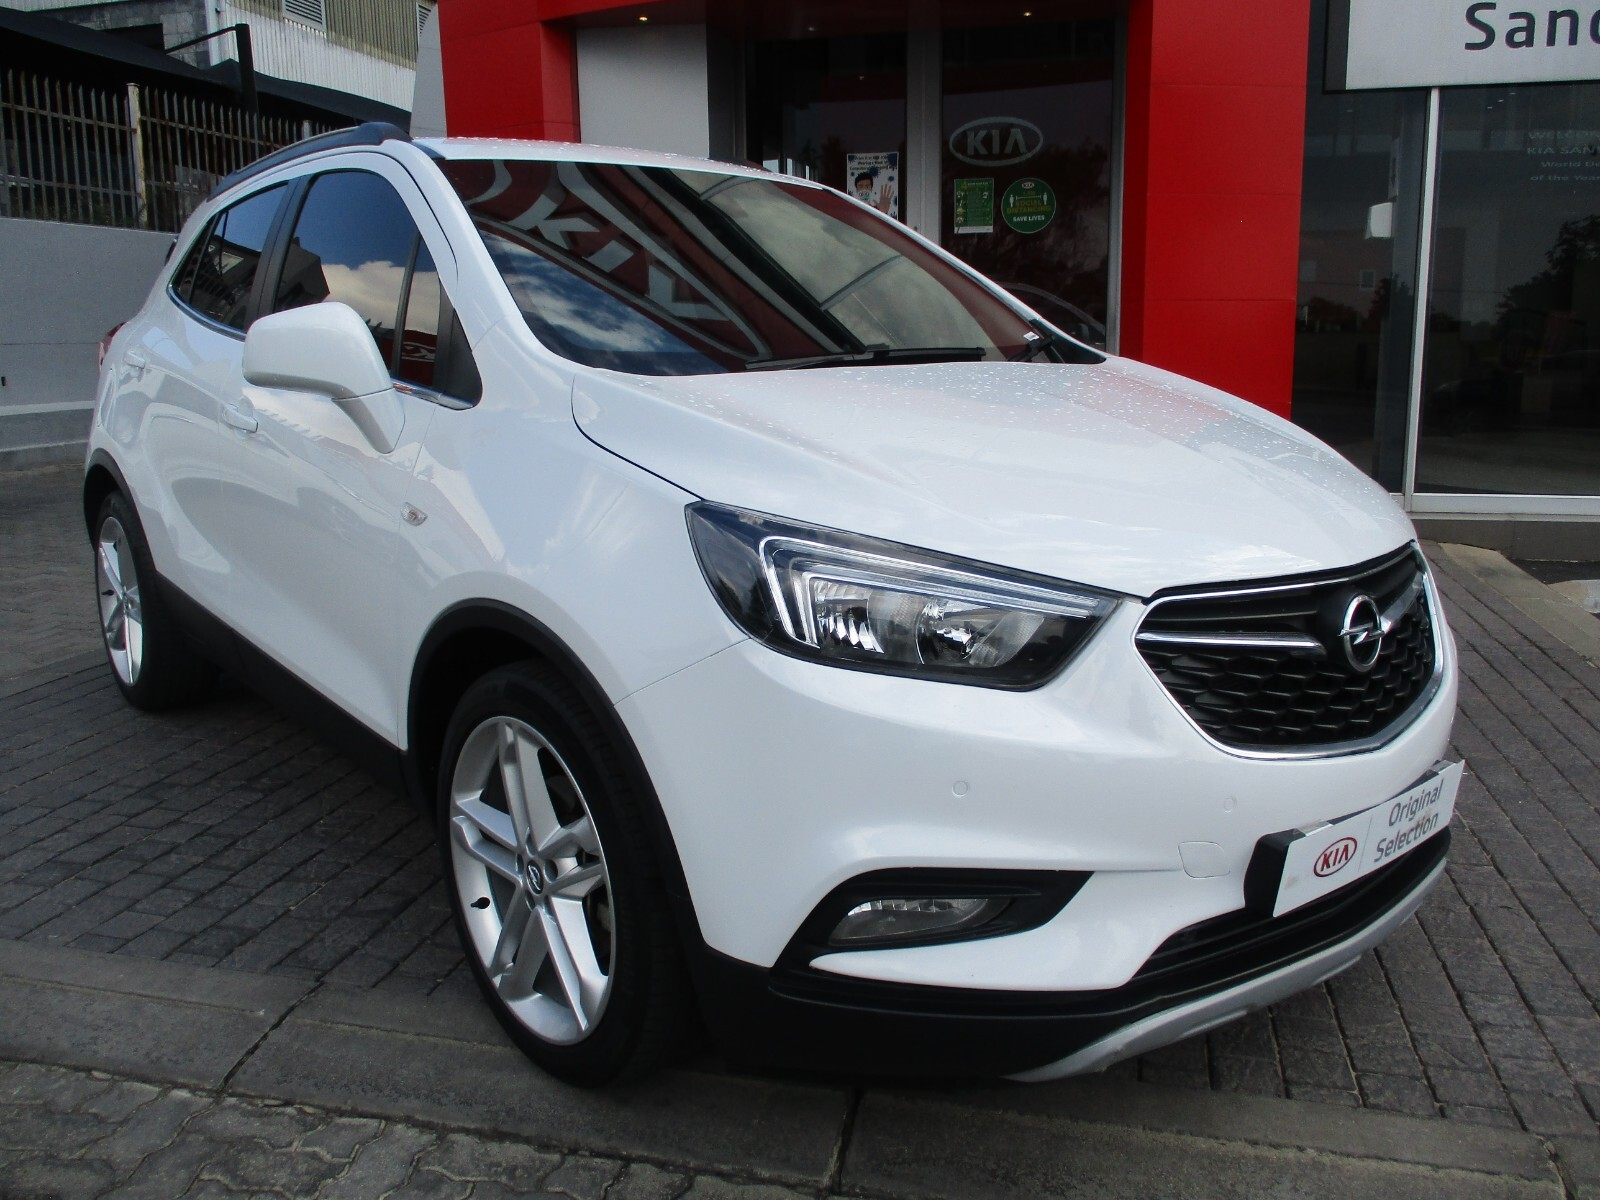 OPEL / X 1.4T COSMO A/T Sandton 0326788